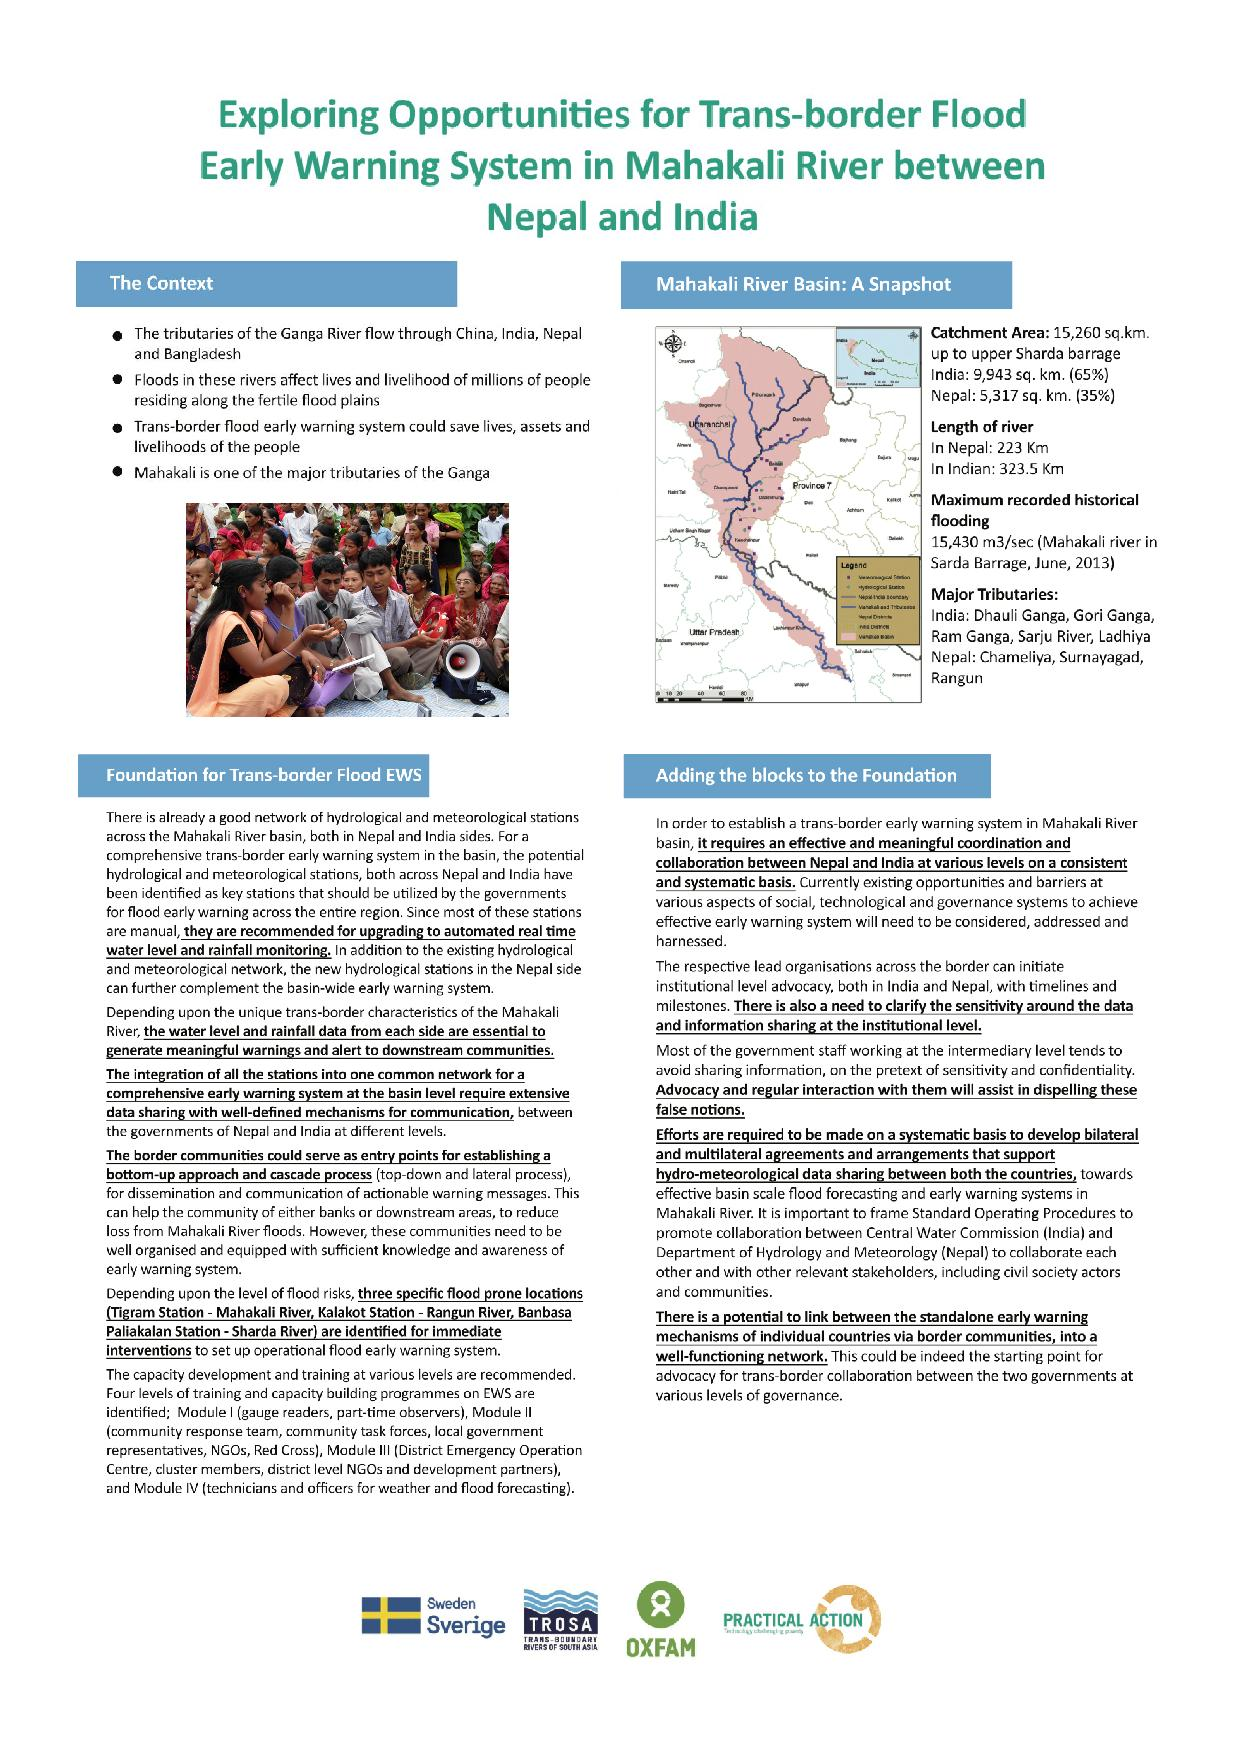 poster of potential transboundary flood early warning system between nepal and india on mahakali river basin